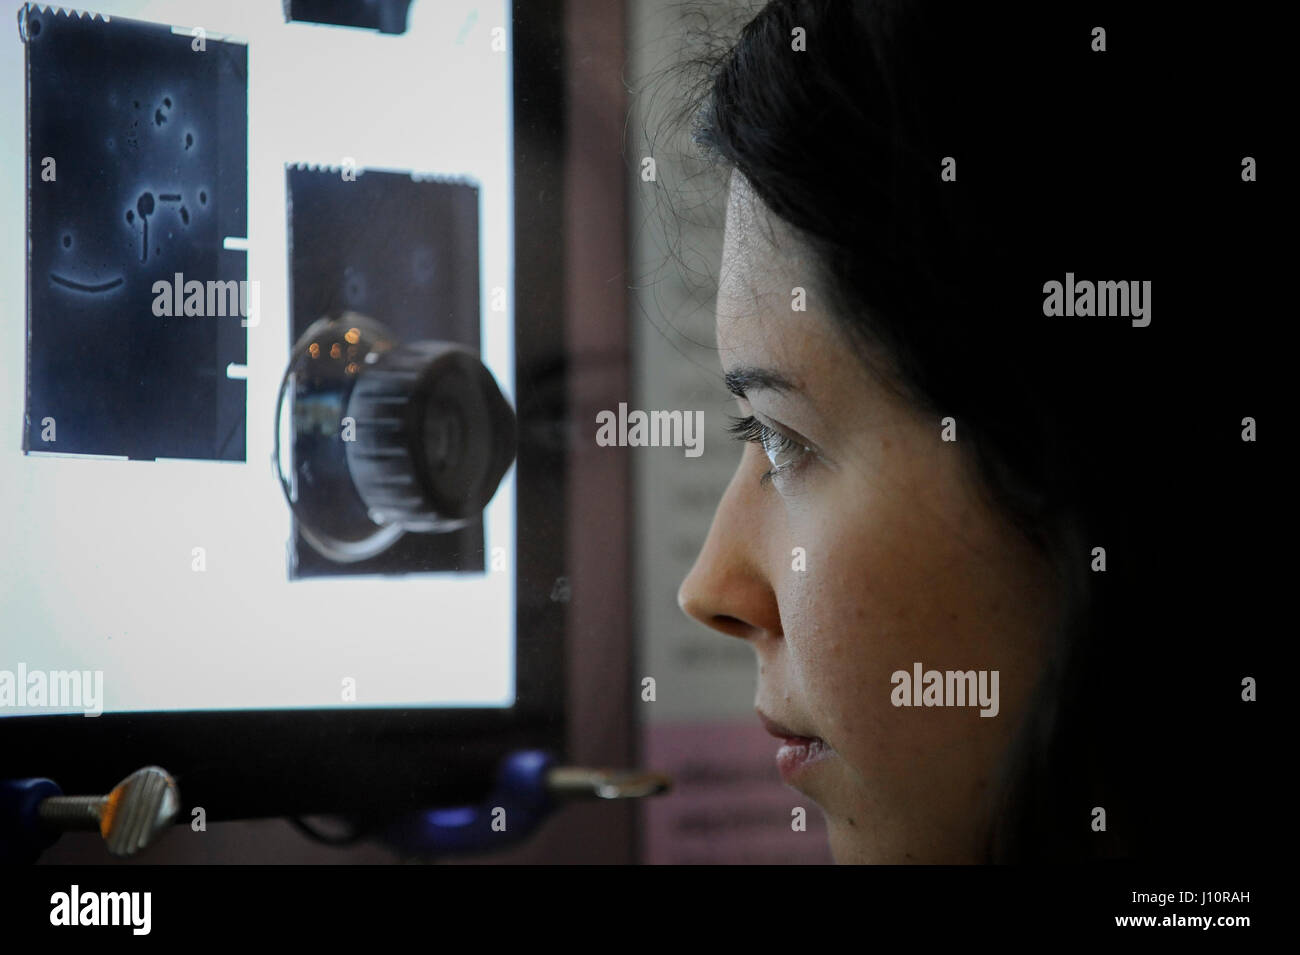 London, UK.  18 April 2017.  A visitor views an exhibit of influenza virus negative stain images captured using - Stock Image